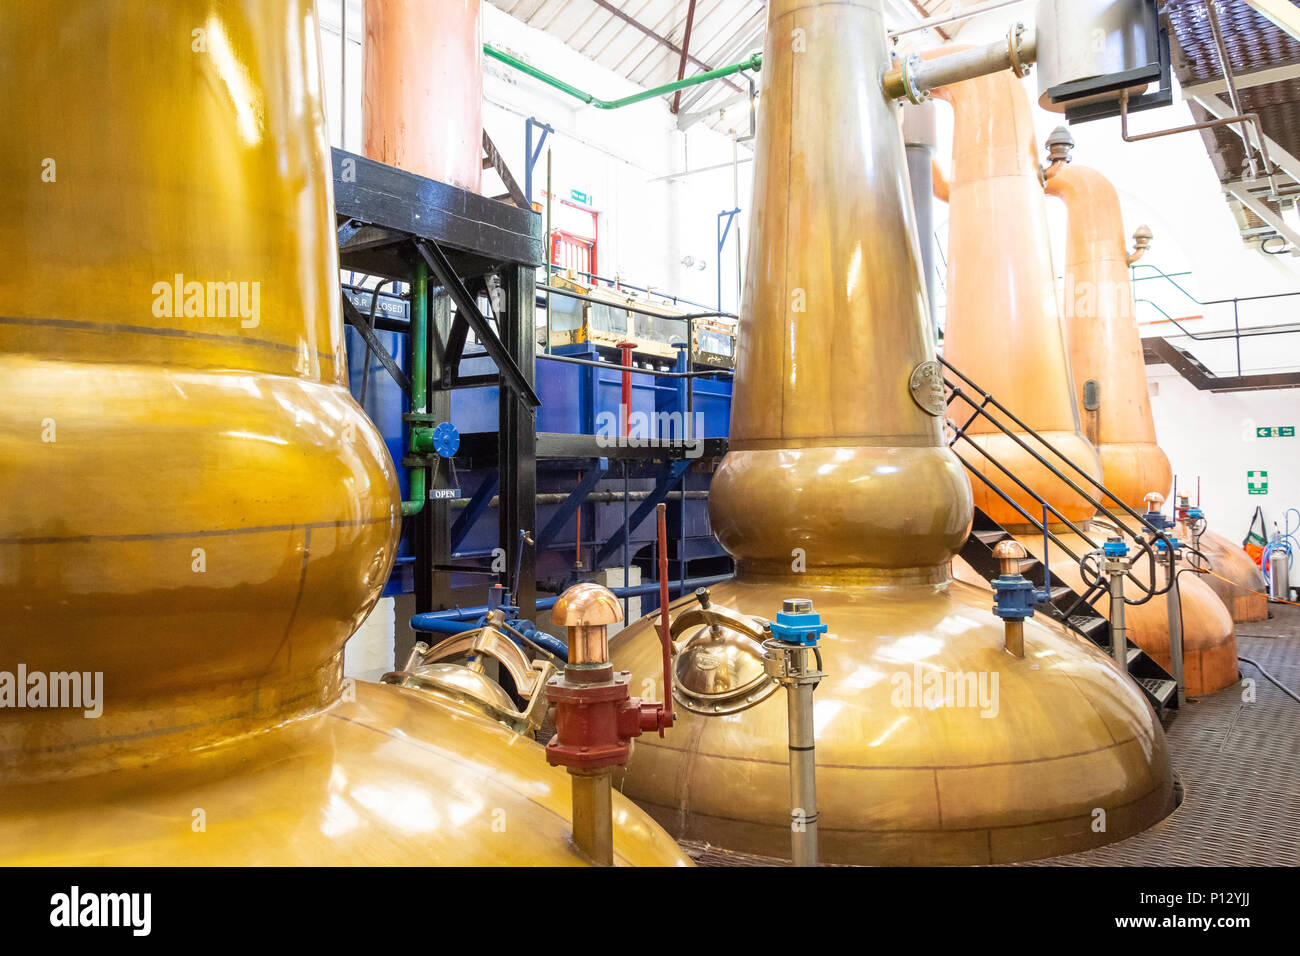 Copper sprit stills at Tobermory whisky distillery, Tobermory, Isle of Bute, Inner Hebrides, Argyll and Bute, Scotland, United Kingdom - Stock Image